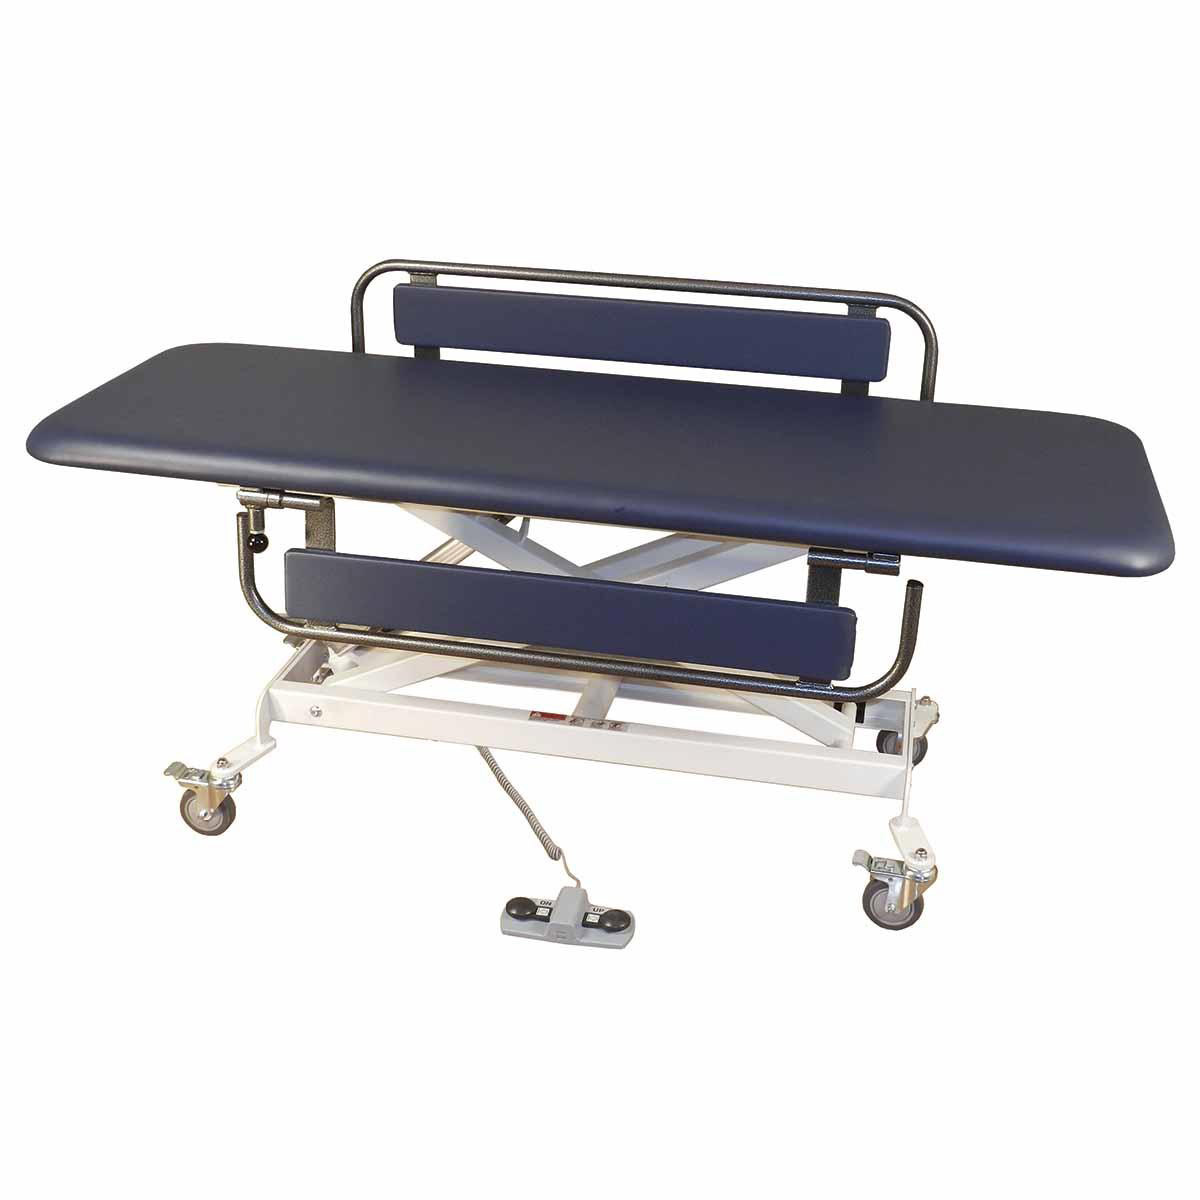 Armedica AM-SX 1072 changing table